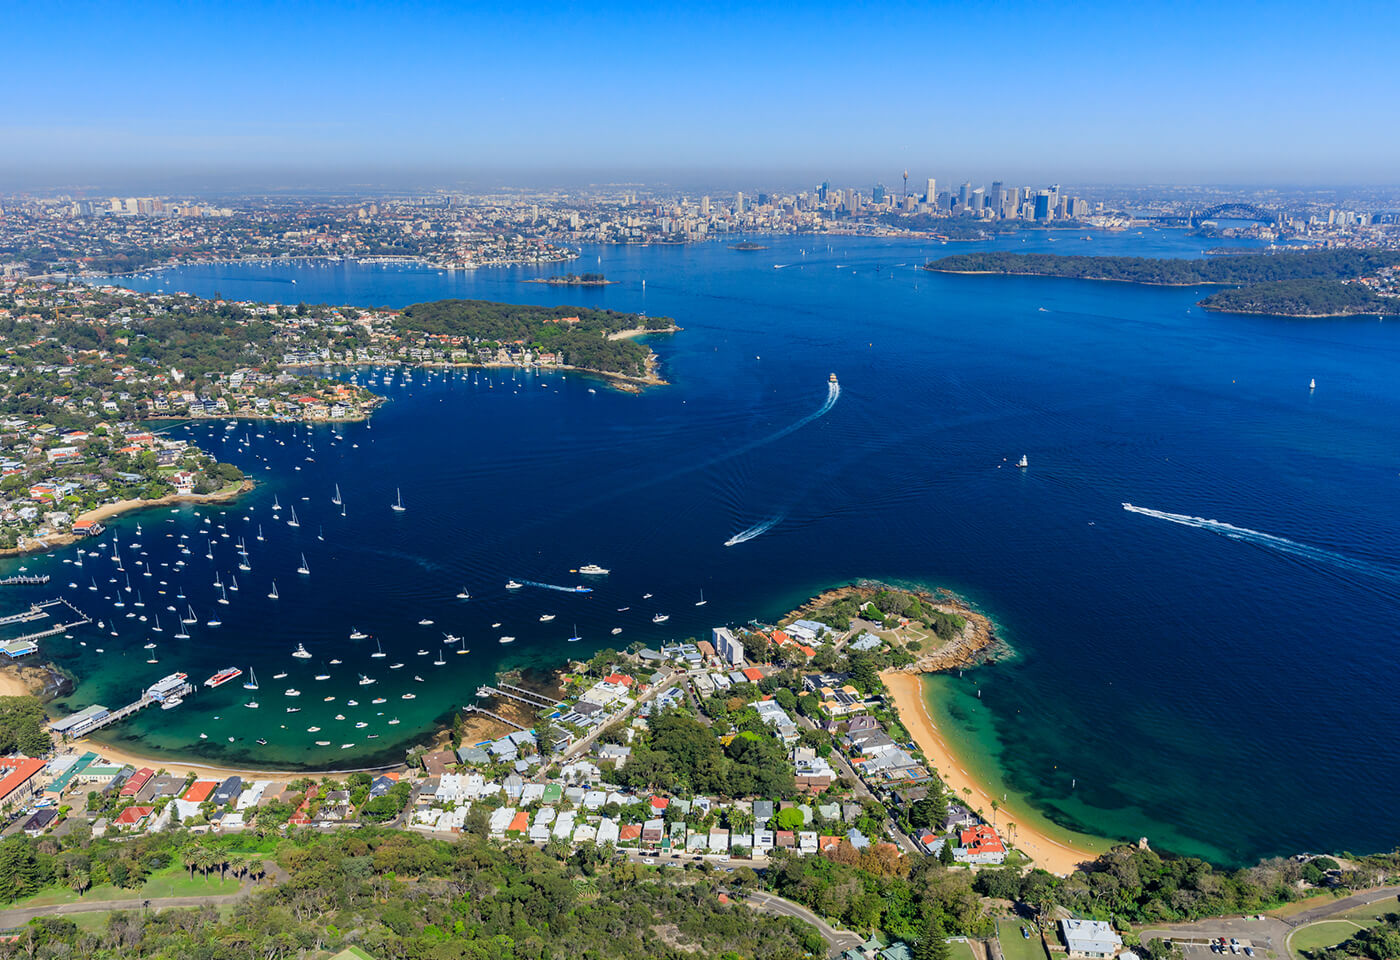 Aerial image of Sydney Harbour